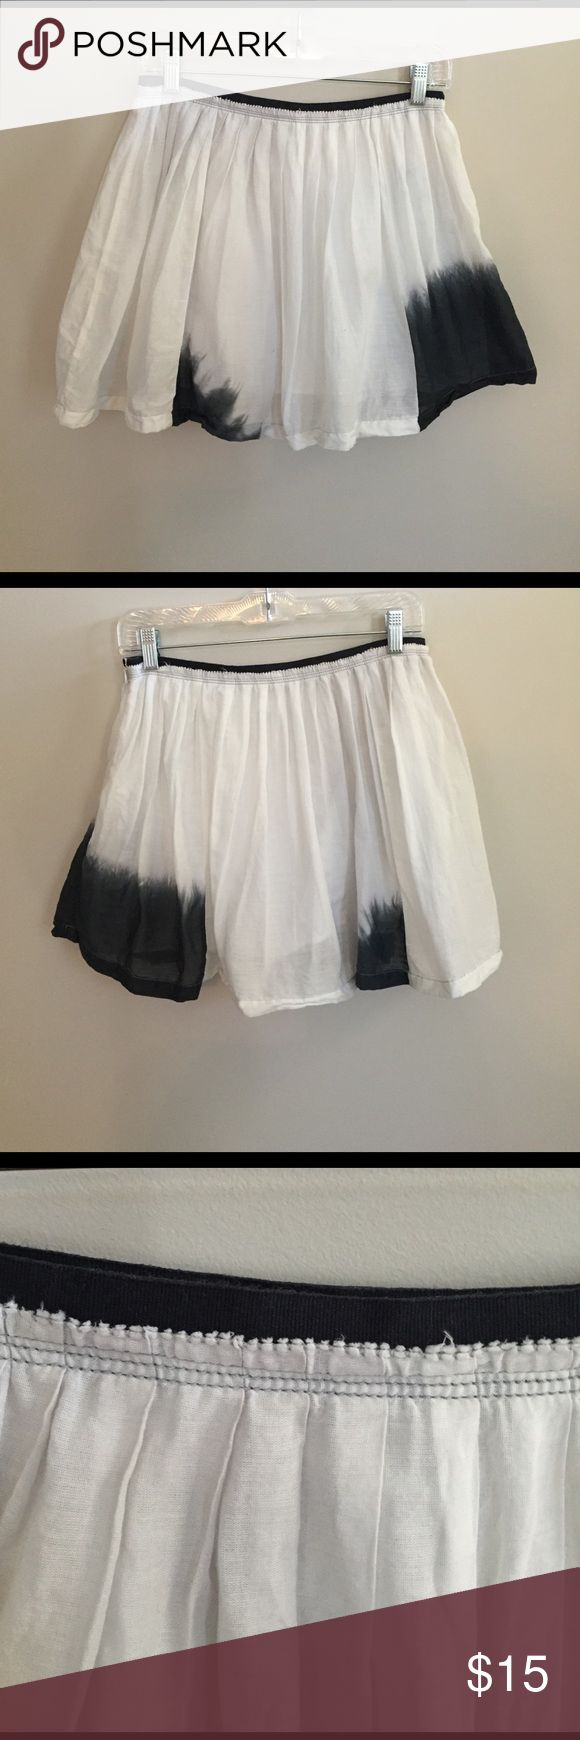 American Eagle Dip Dye Skirt White cotton skirt with navy dye accents. Slight fraying around the top- part of the design. Item is in like new condition. 100% cotton. American Eagle Outfitters Skirts Mini